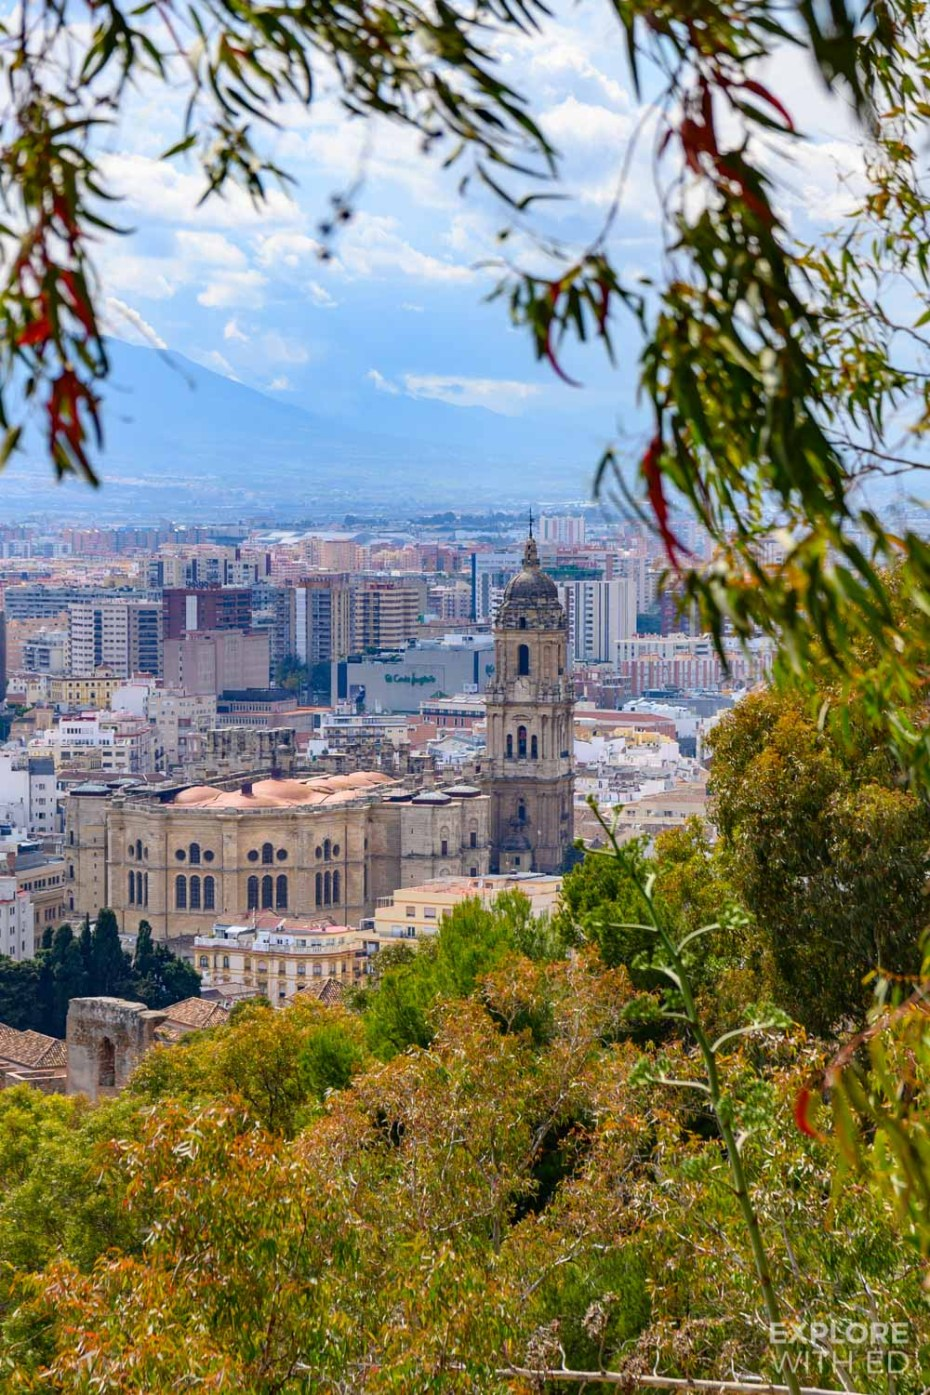 A view of Malaga Cathedral from Gibralfaro